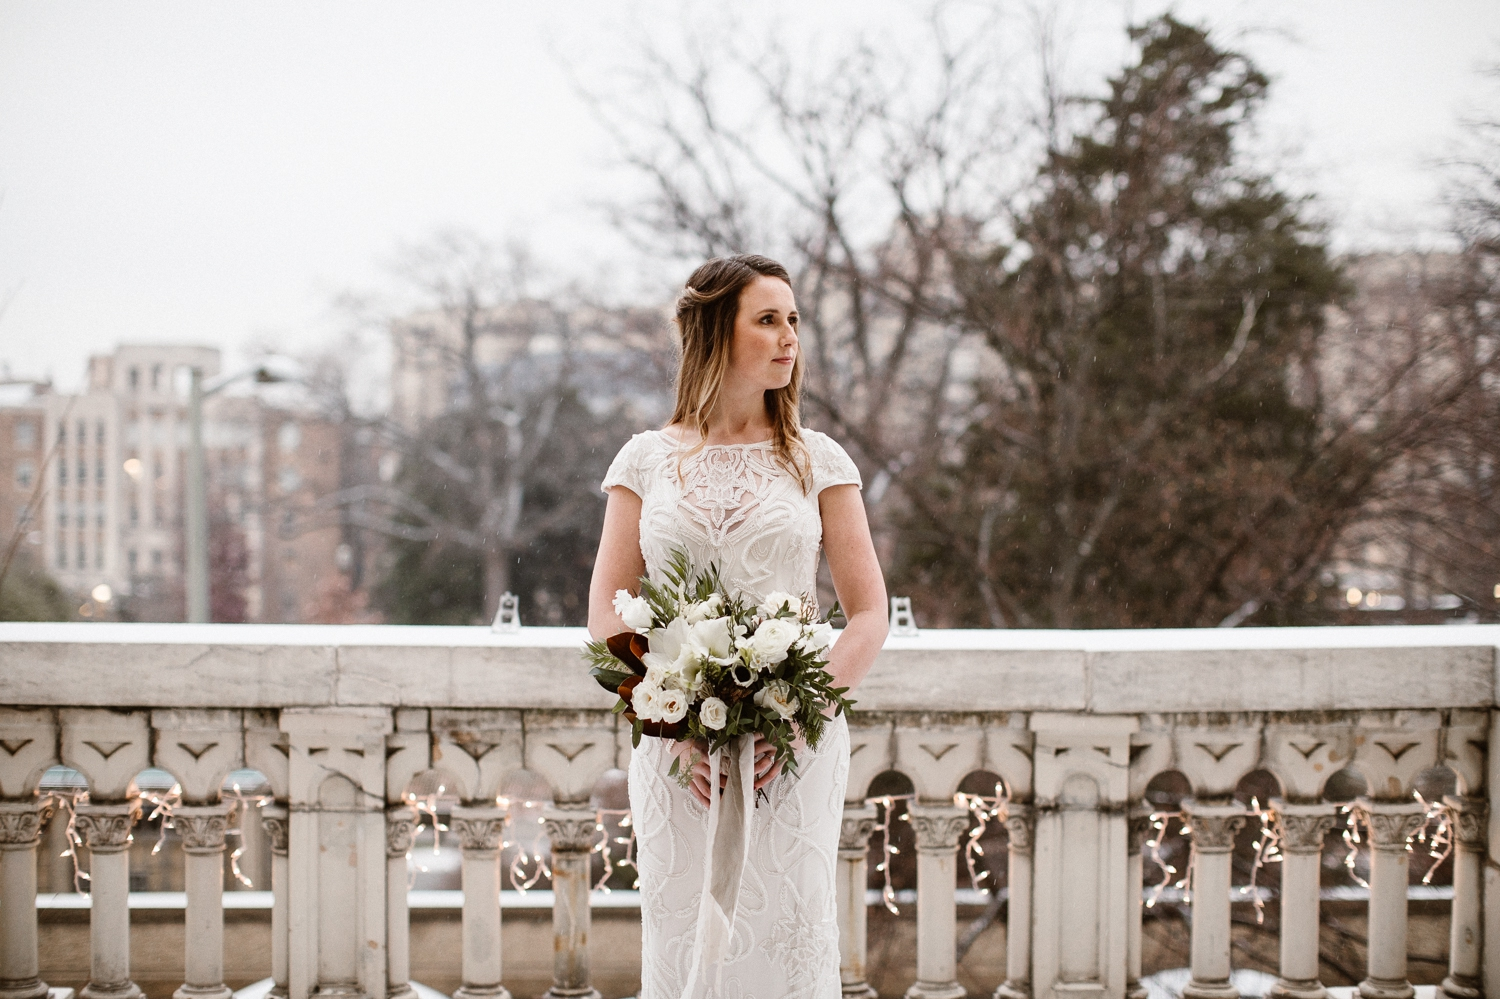 mason-and-rook-first-look-rooftop-josephine-butler-parks-wedding-photographer 92.jpg